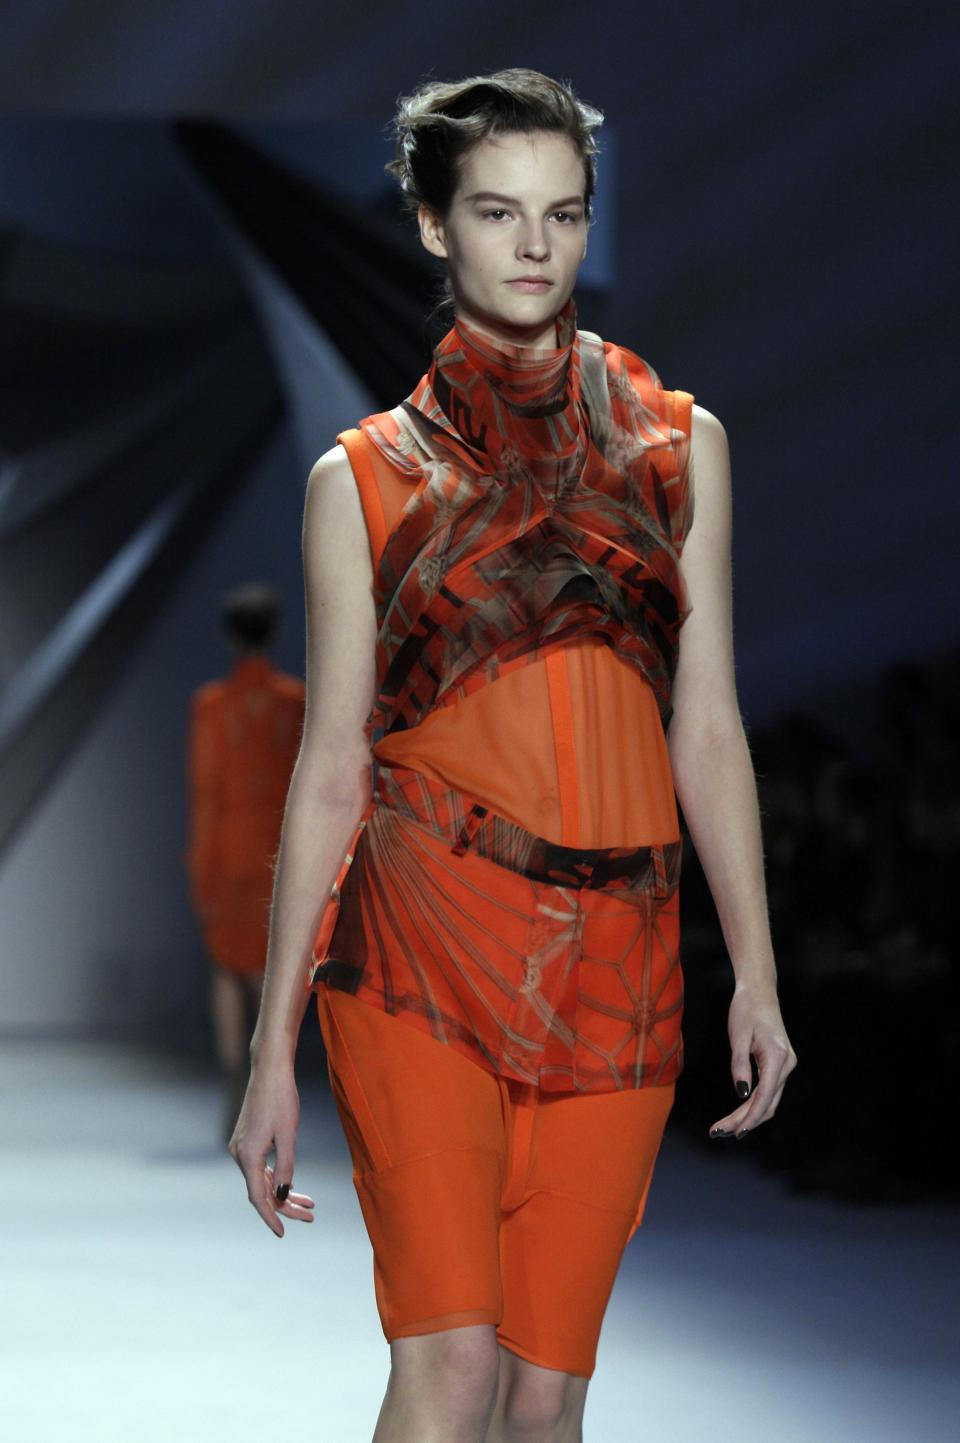 The Vera Wang Fall 2012 collection is modeled during Fashion Week, in New York,  Tuesday, Feb. 14, 2012. (AP Photo/Richard Drew)